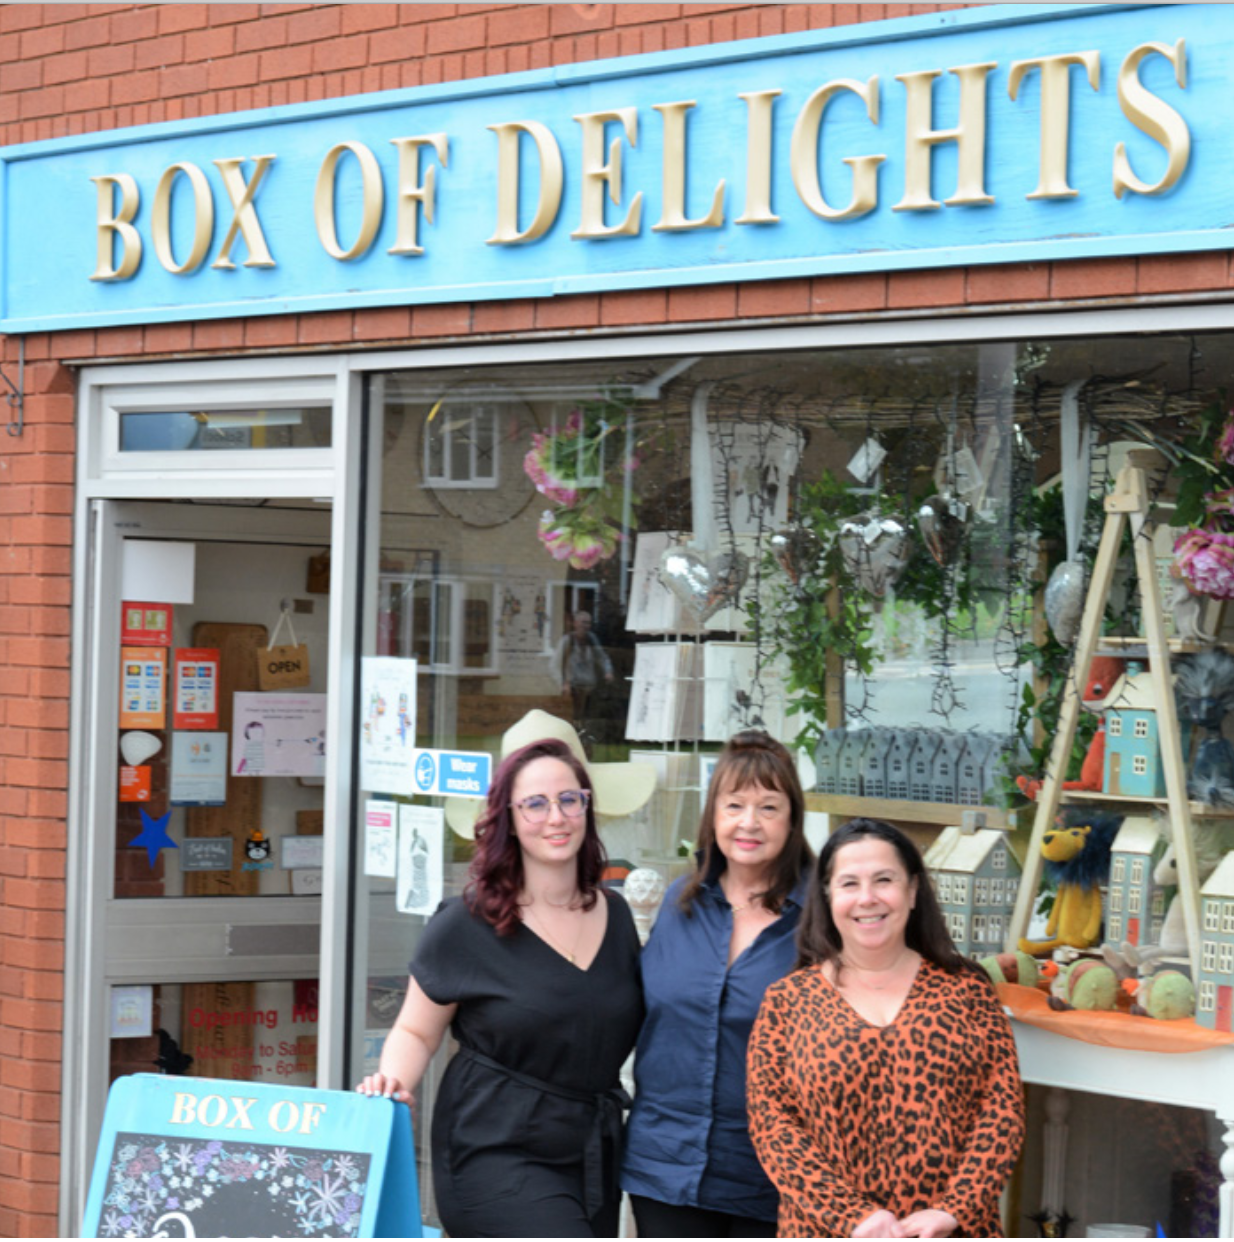 Above: Box of Delights is a three generation business. Michelle (right) with her mum and daughter.